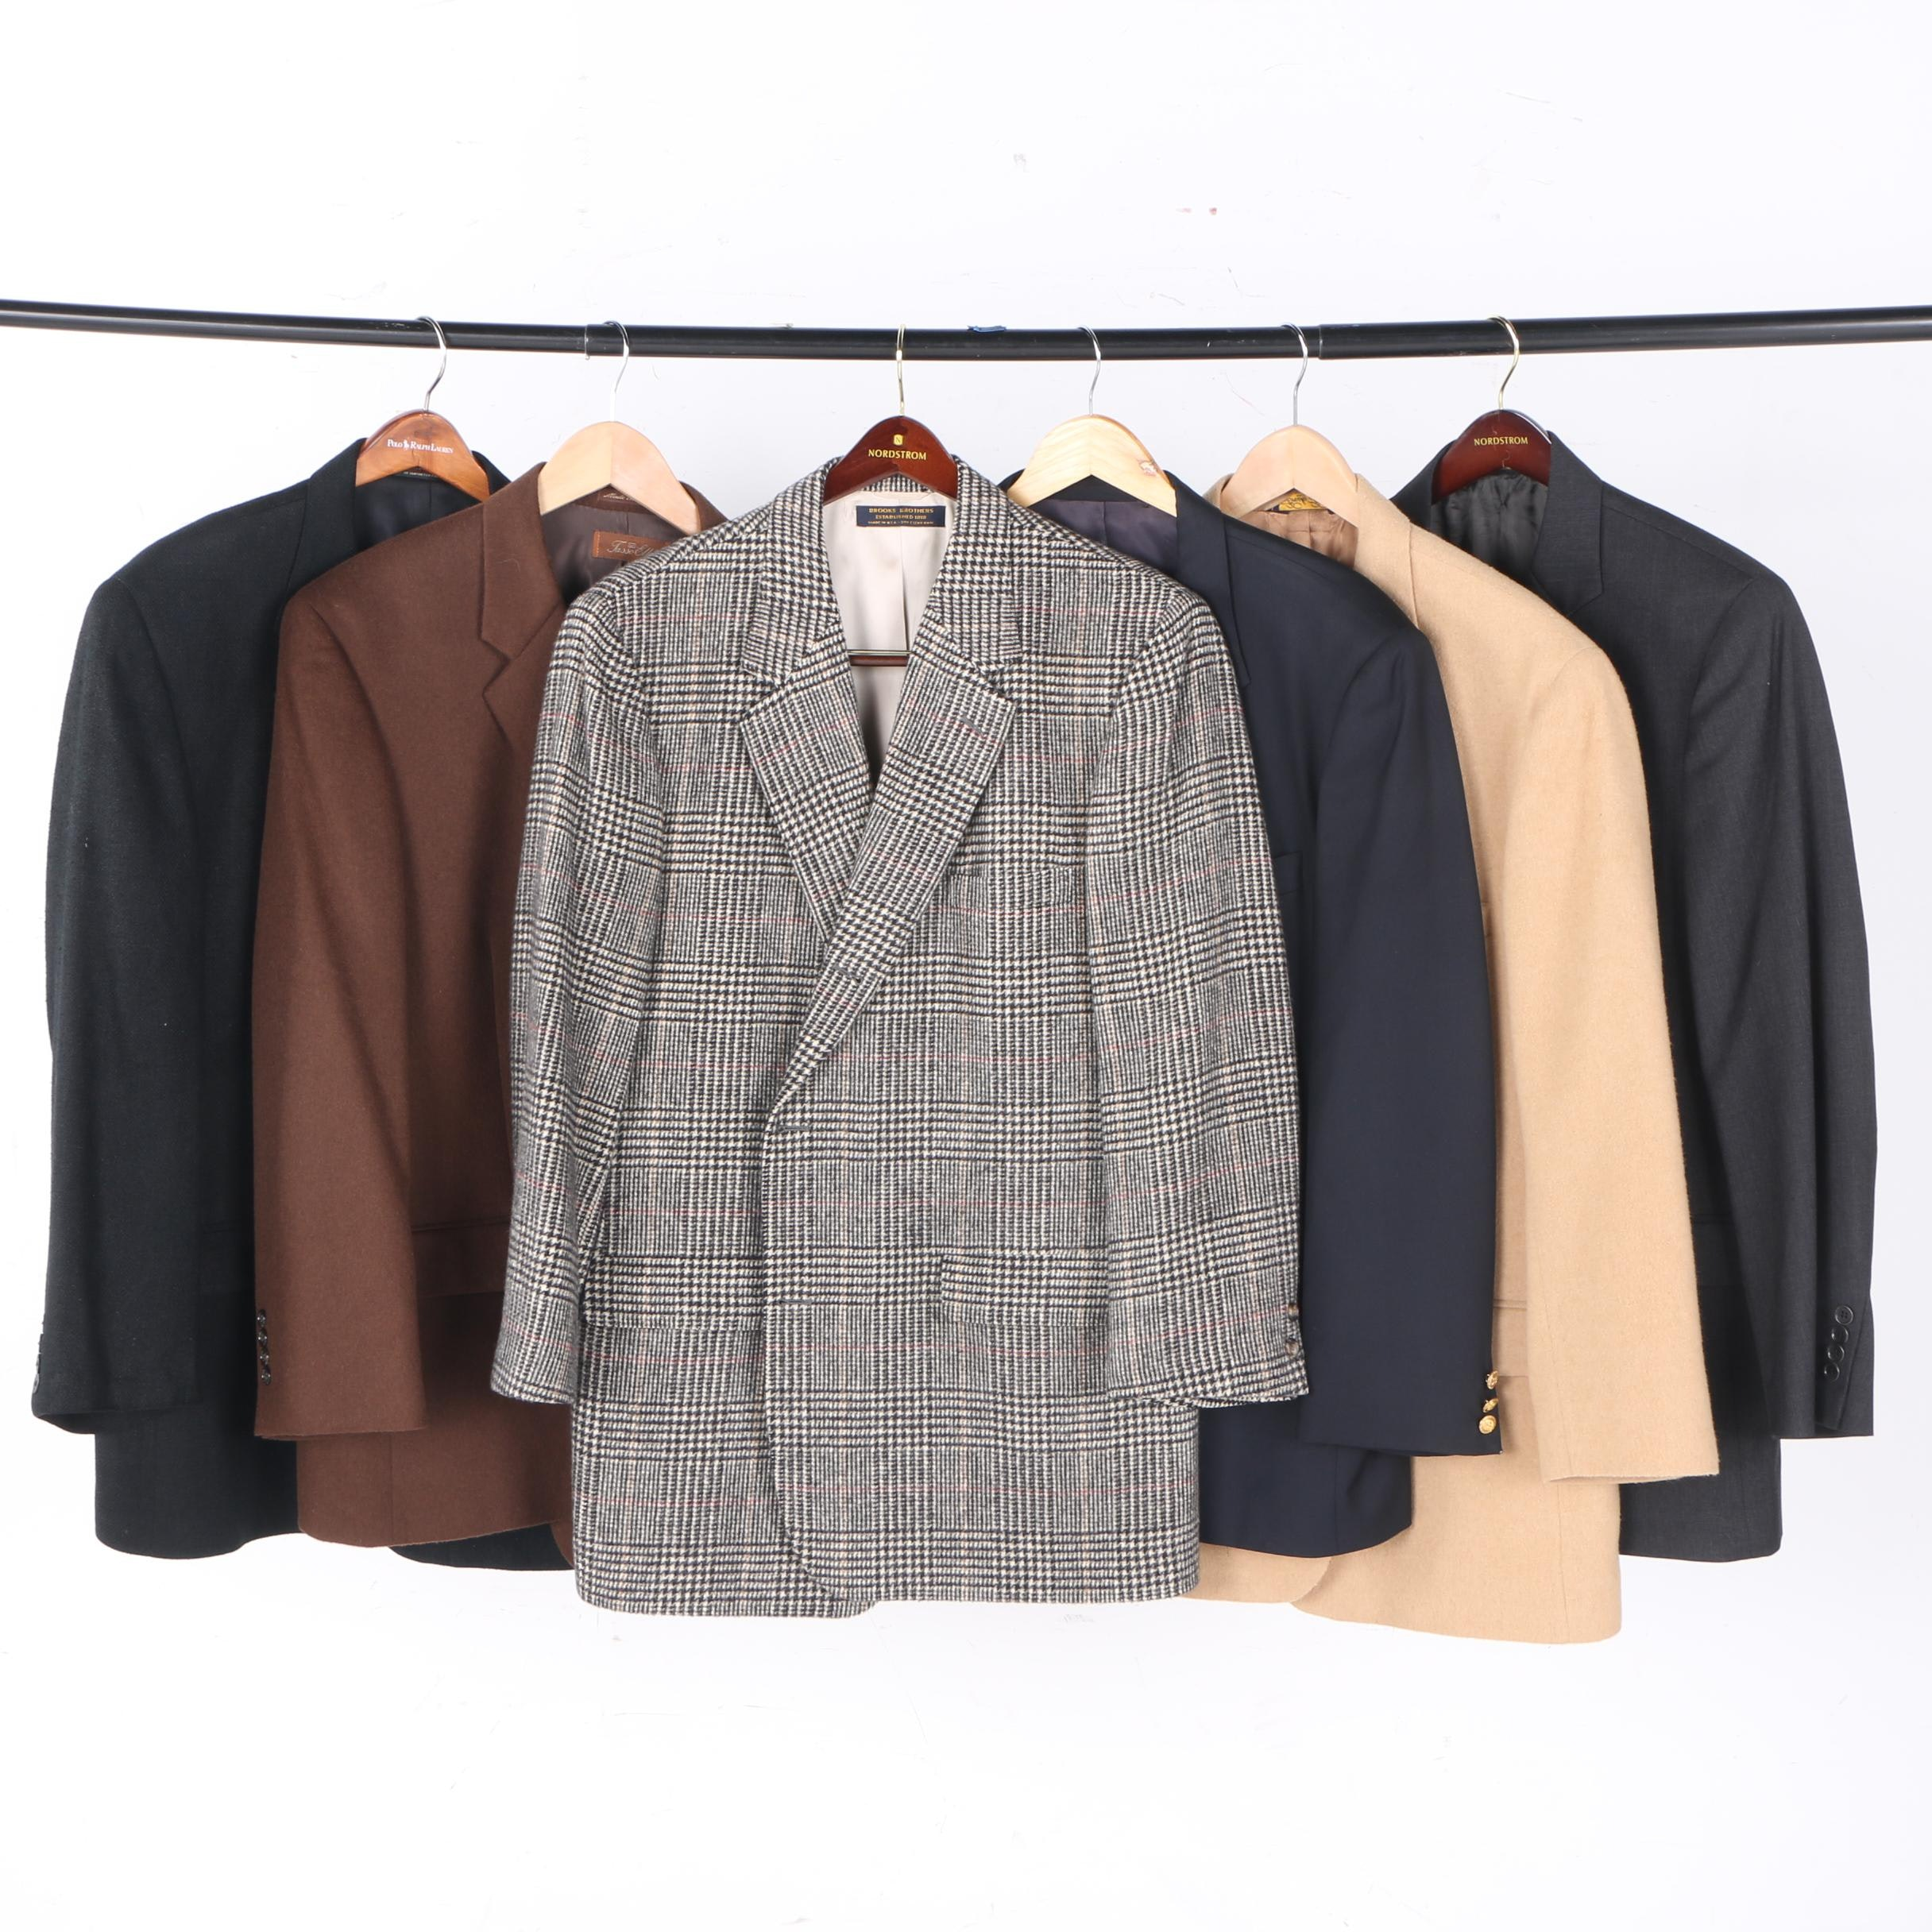 Men's Blazers and Suit Including Brooks Brothers